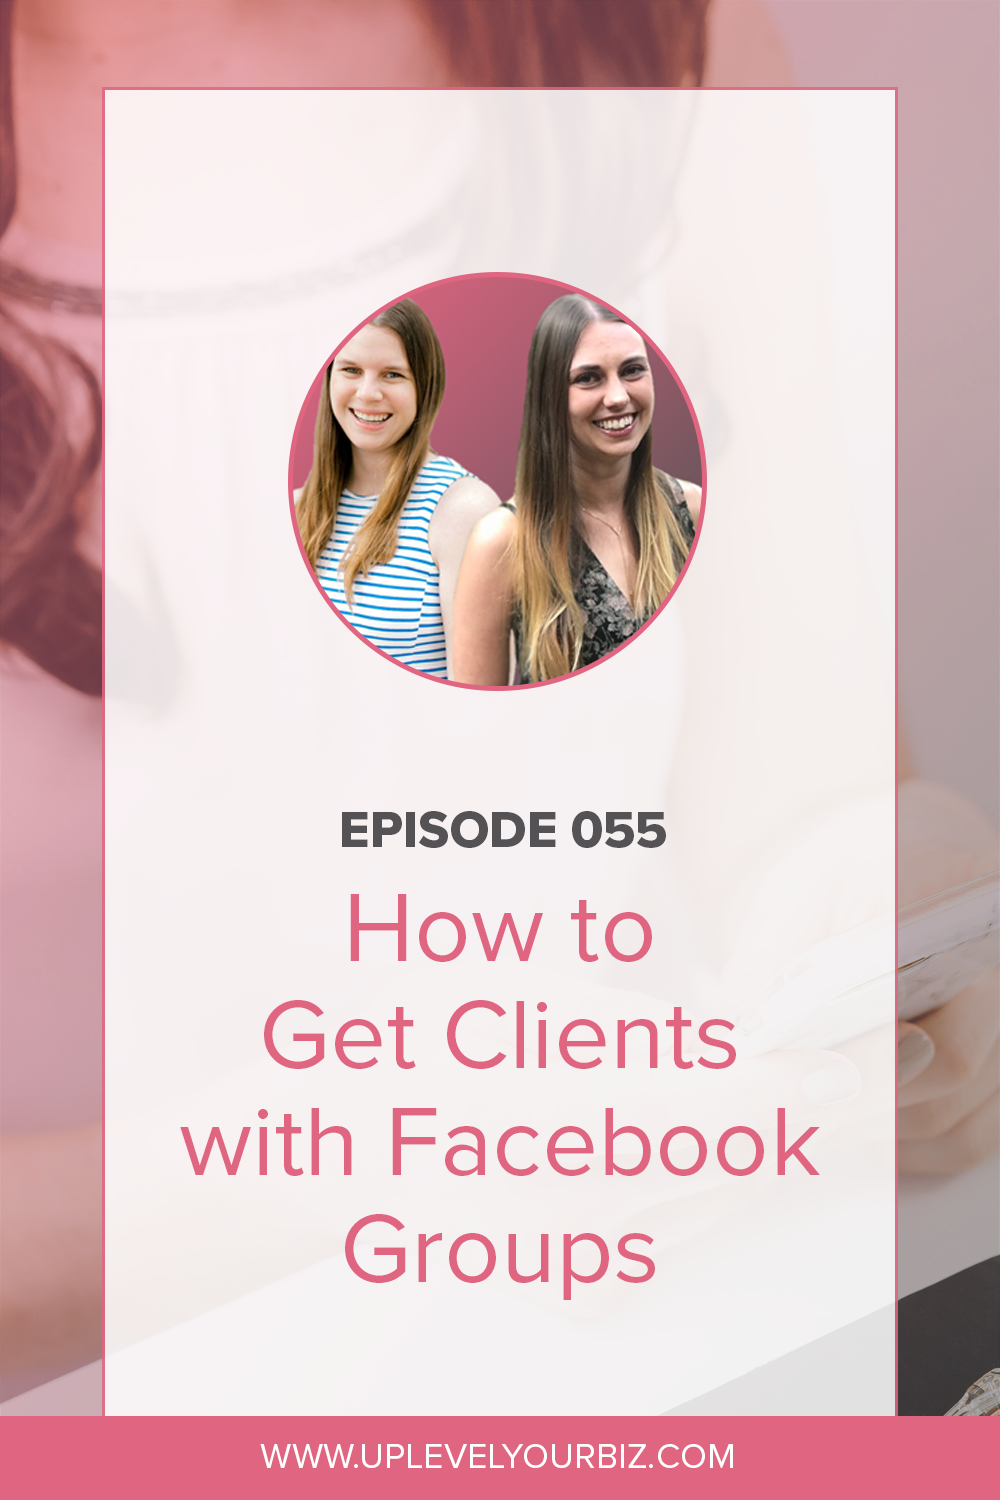 In today's episode, we are chatting about how to get clients from Facebook groups from the strategies to the do's and don'ts to making a good impression.